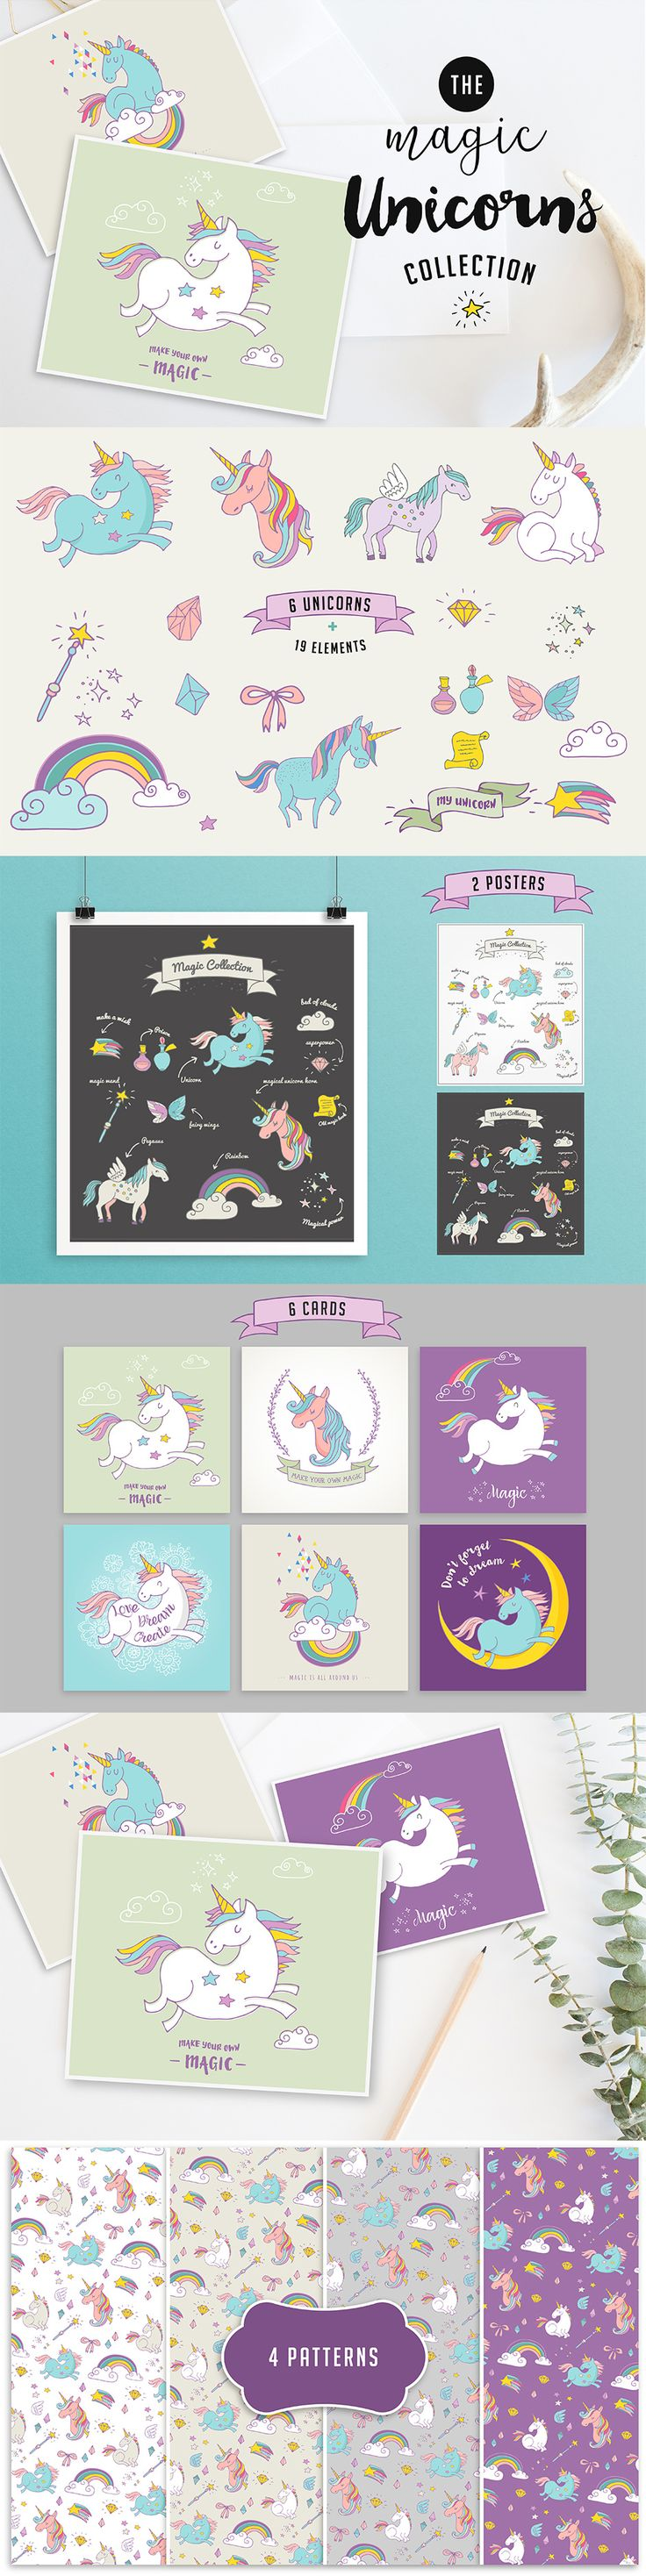 The Creative Designer's Complete Illustration Kit #unicorn